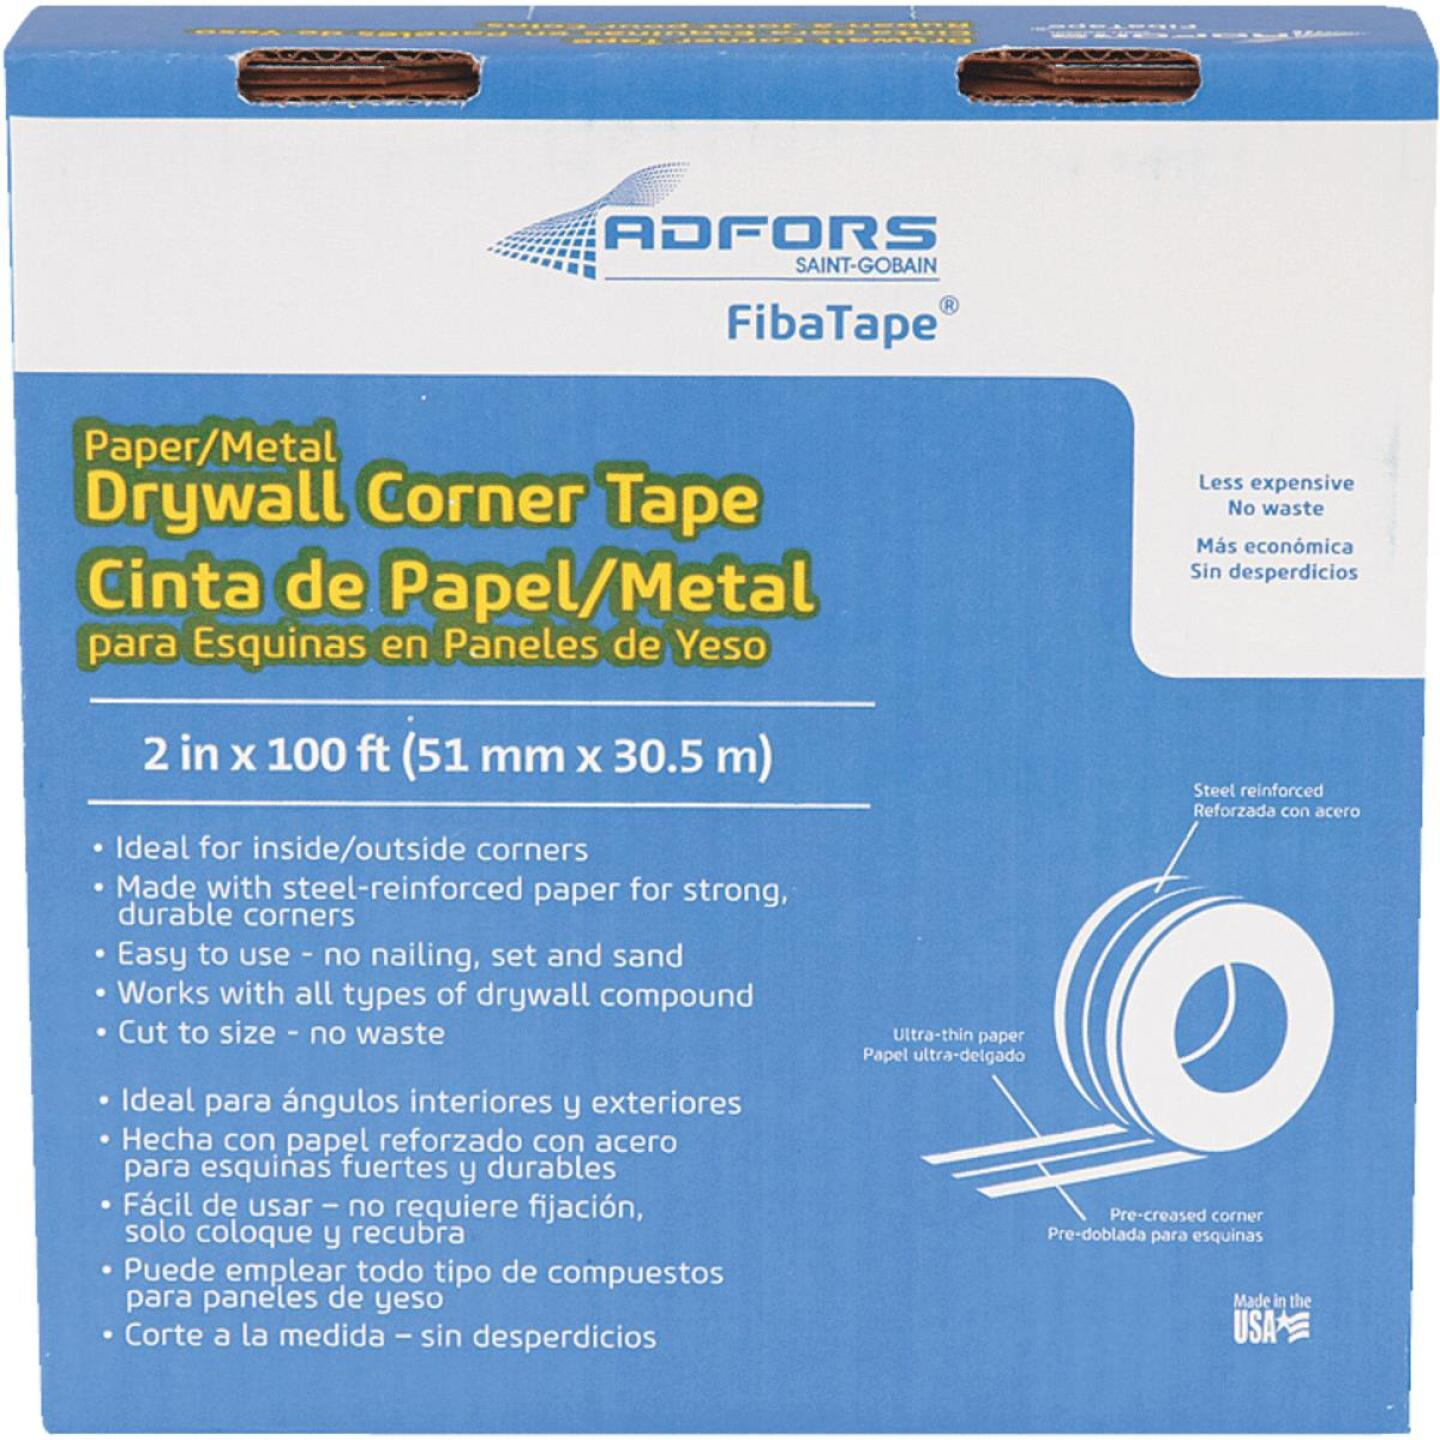 FibaTape 2 In. x 100 Ft. Steel Reinforced Corner Drywall Tape Image 1